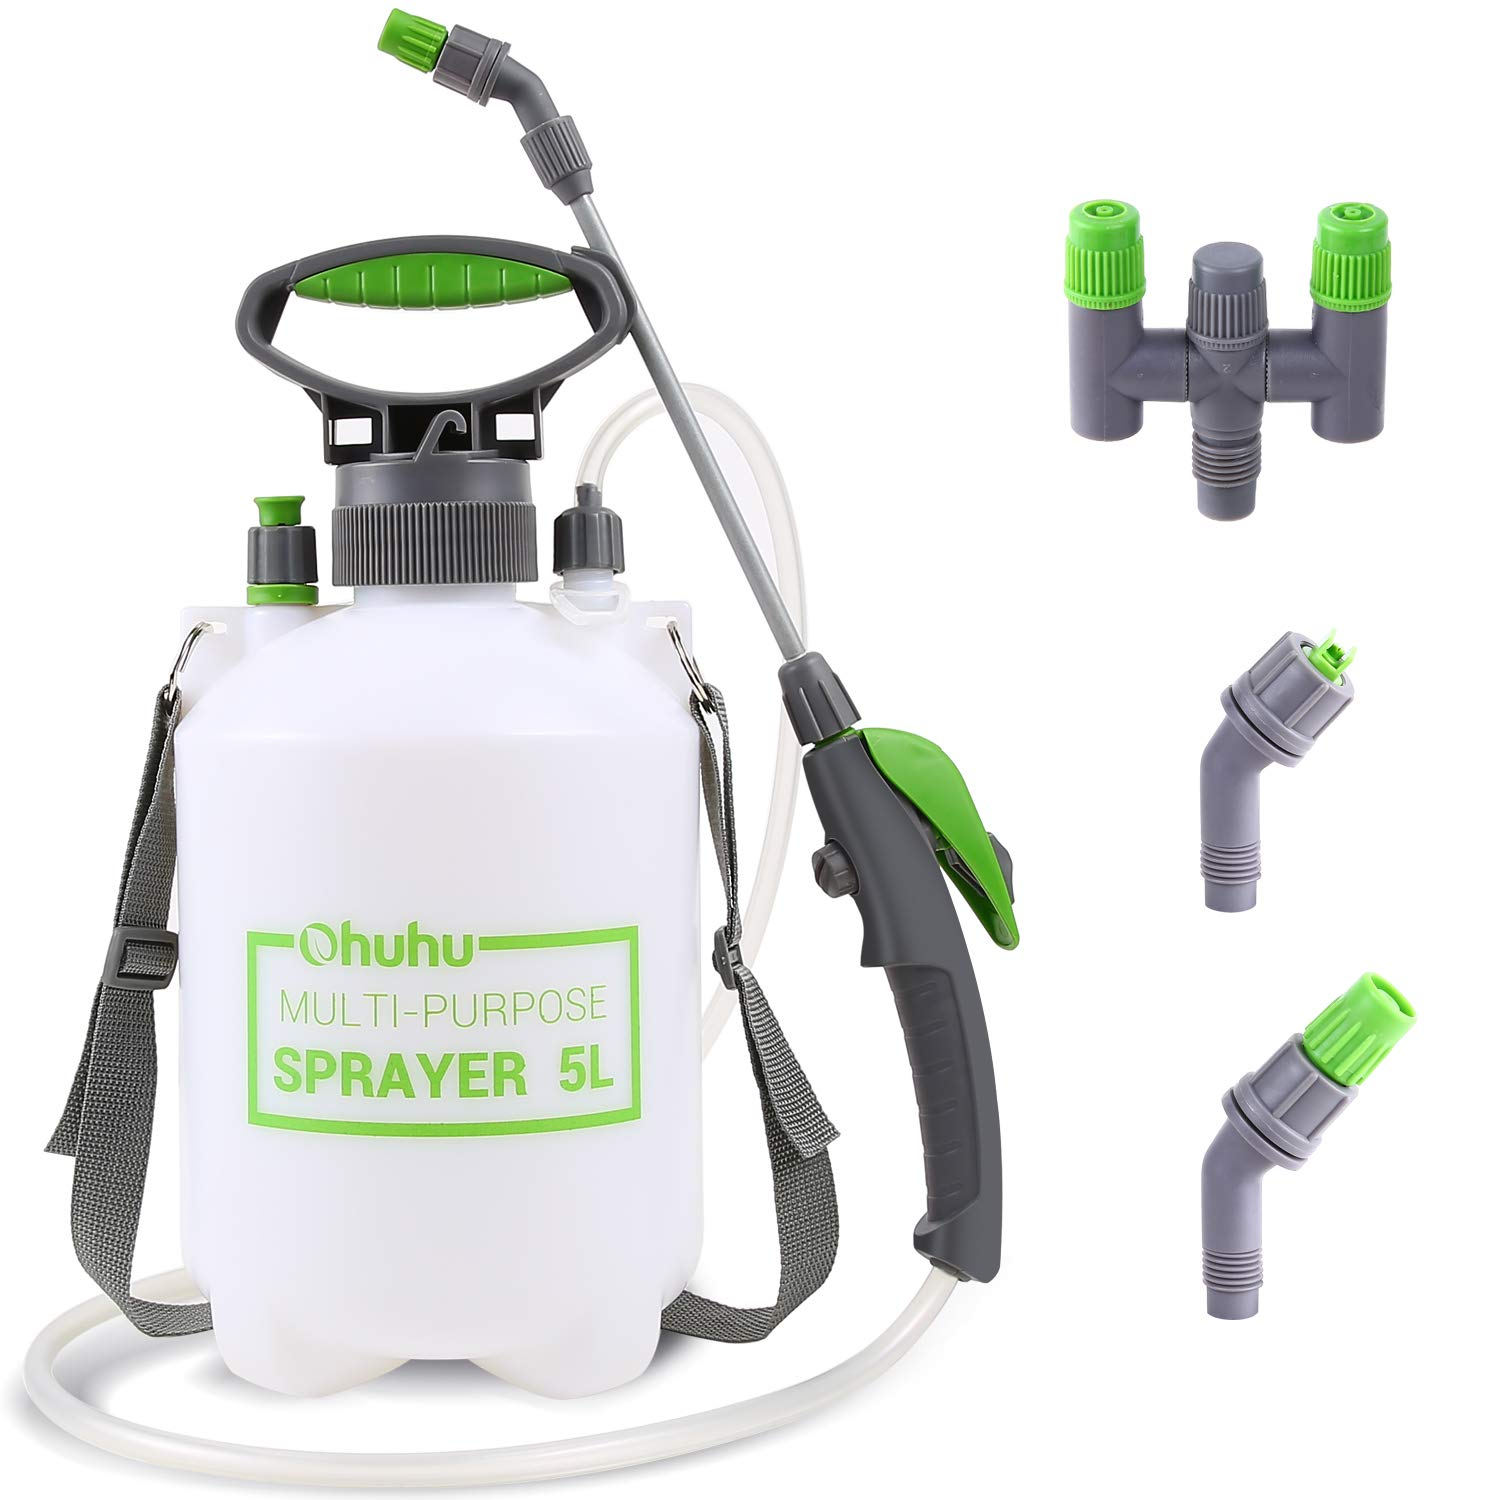 Ohuhu 1.3 Gallon/5L Lawn and Garden Pump Pressure Sprayer with 2 Different Nozzles, Pressure Relief Valve & Adjustable Shoulder Strap for Fertilizers, Mild, Solvent-Free Solutions by Ohuhu